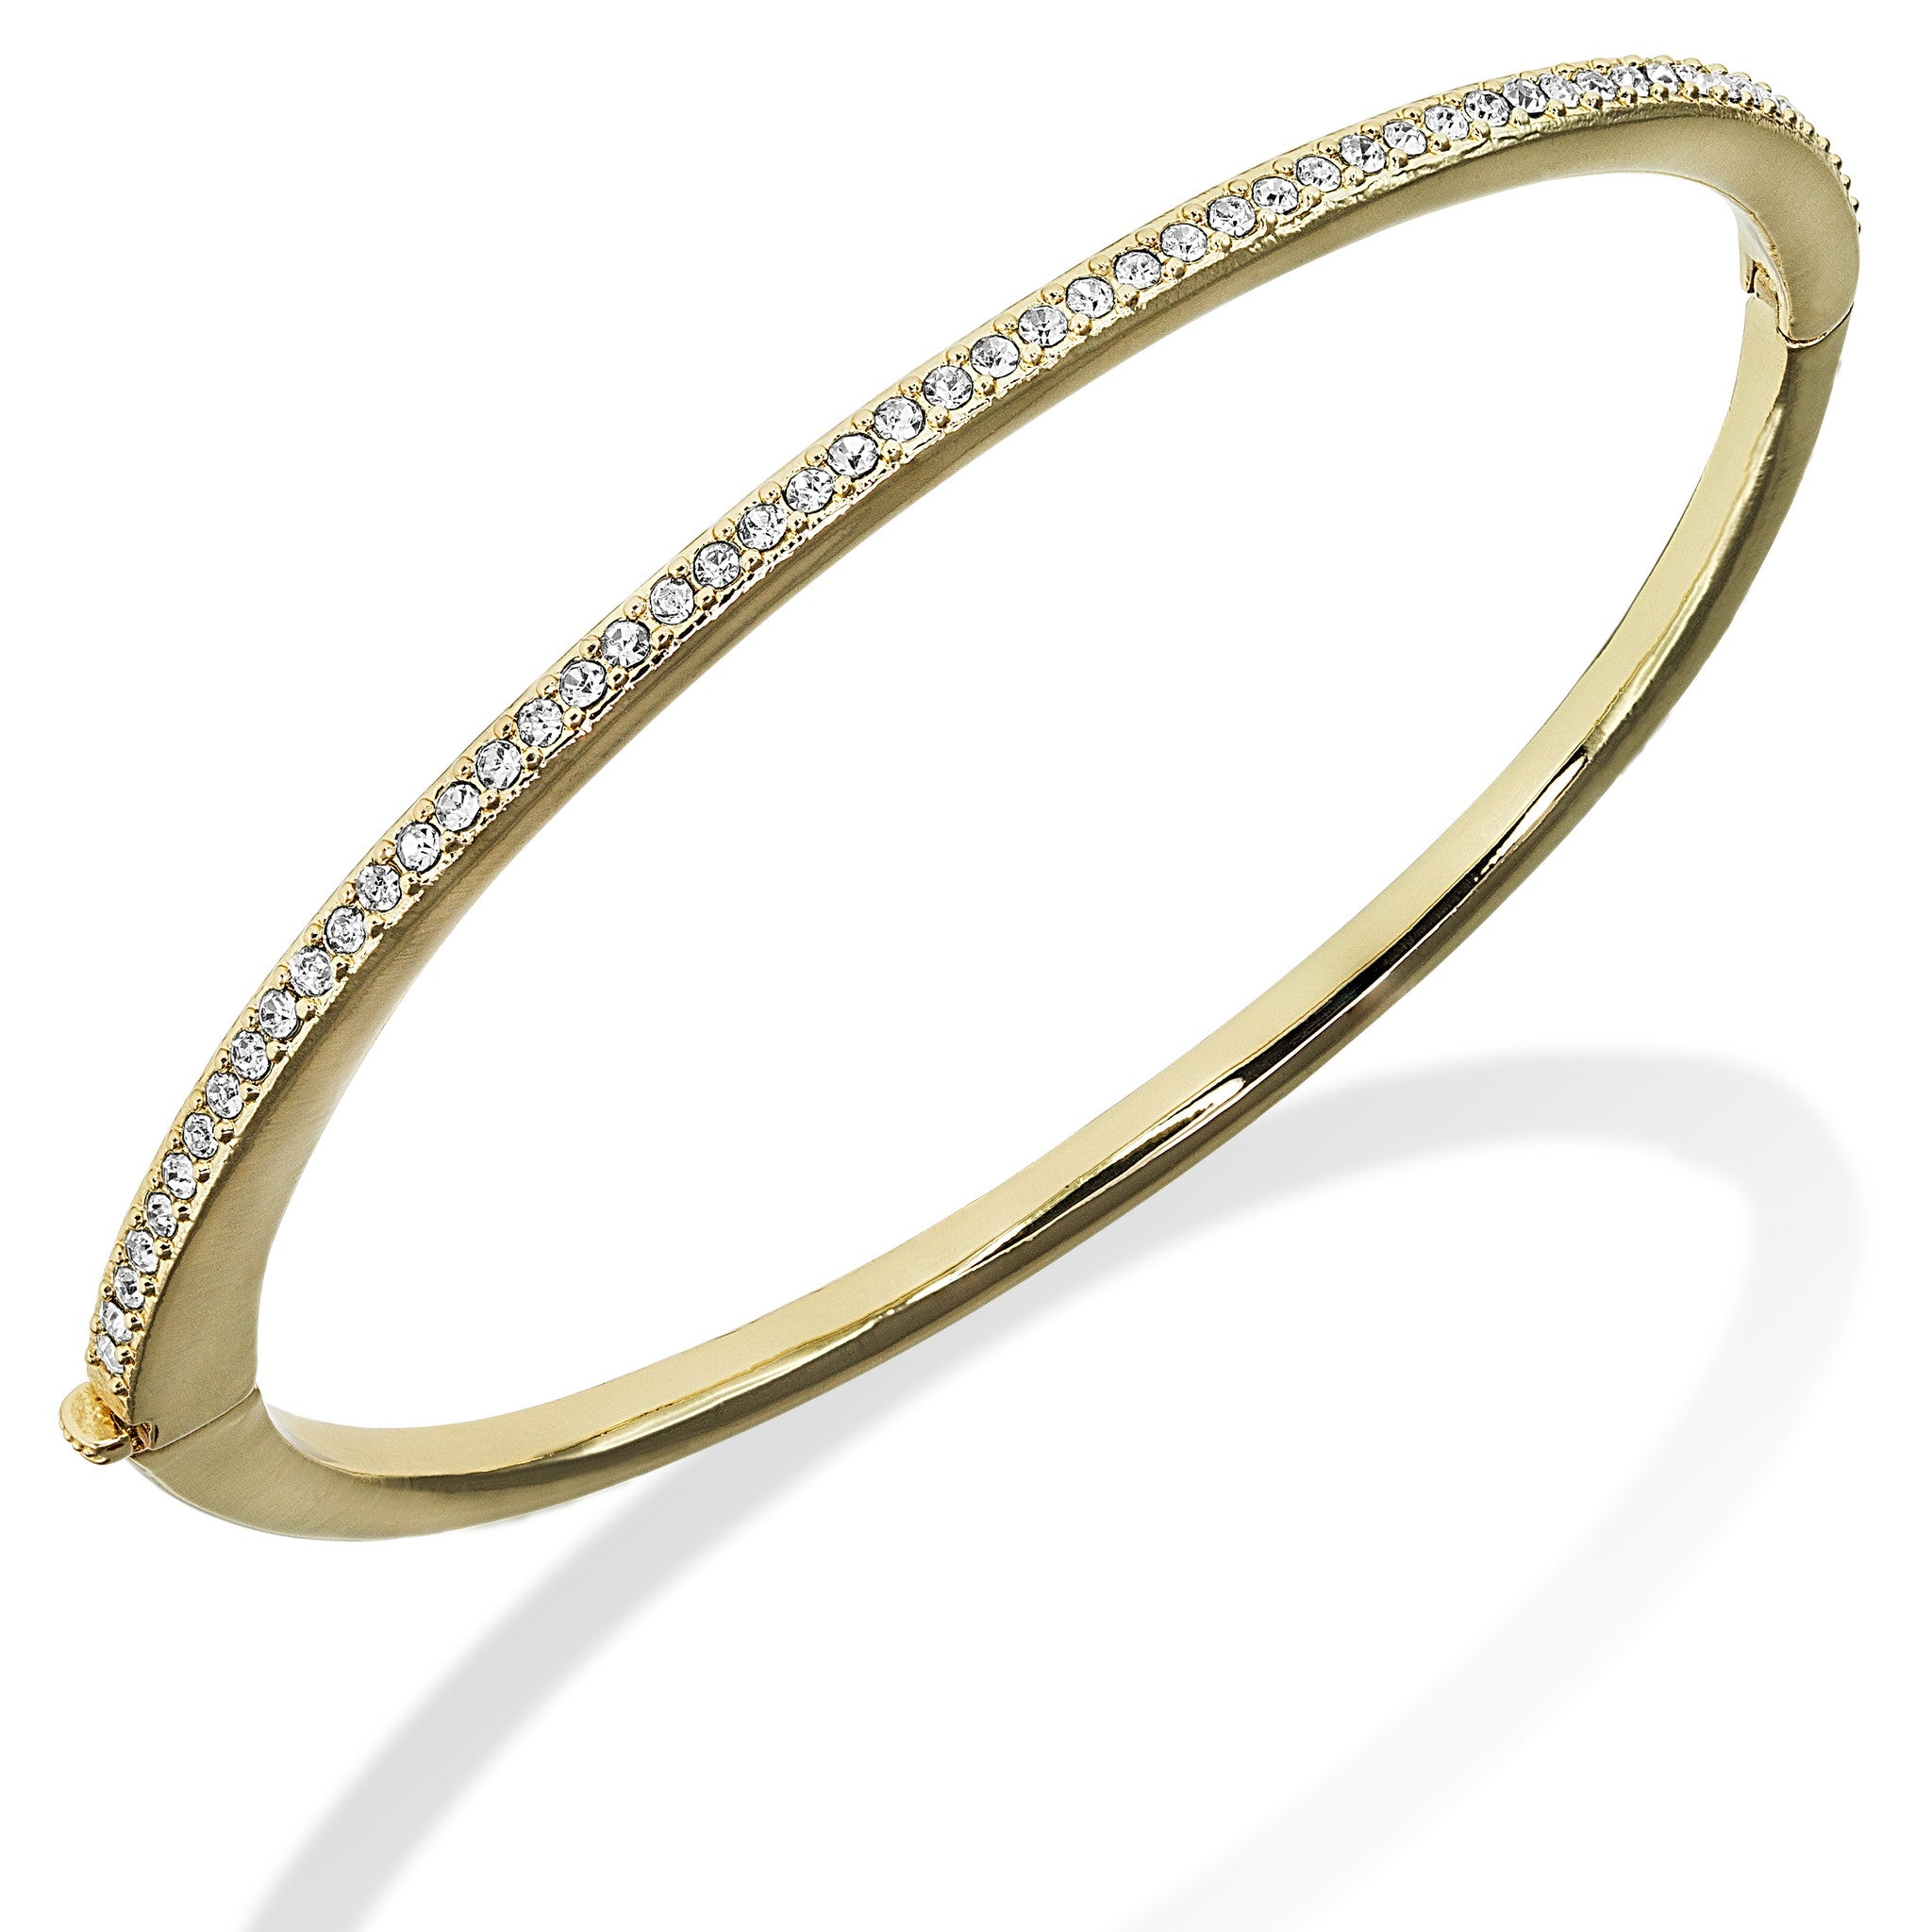 row sons fabrikant pave andrew bangles white product gold bangle diamond img